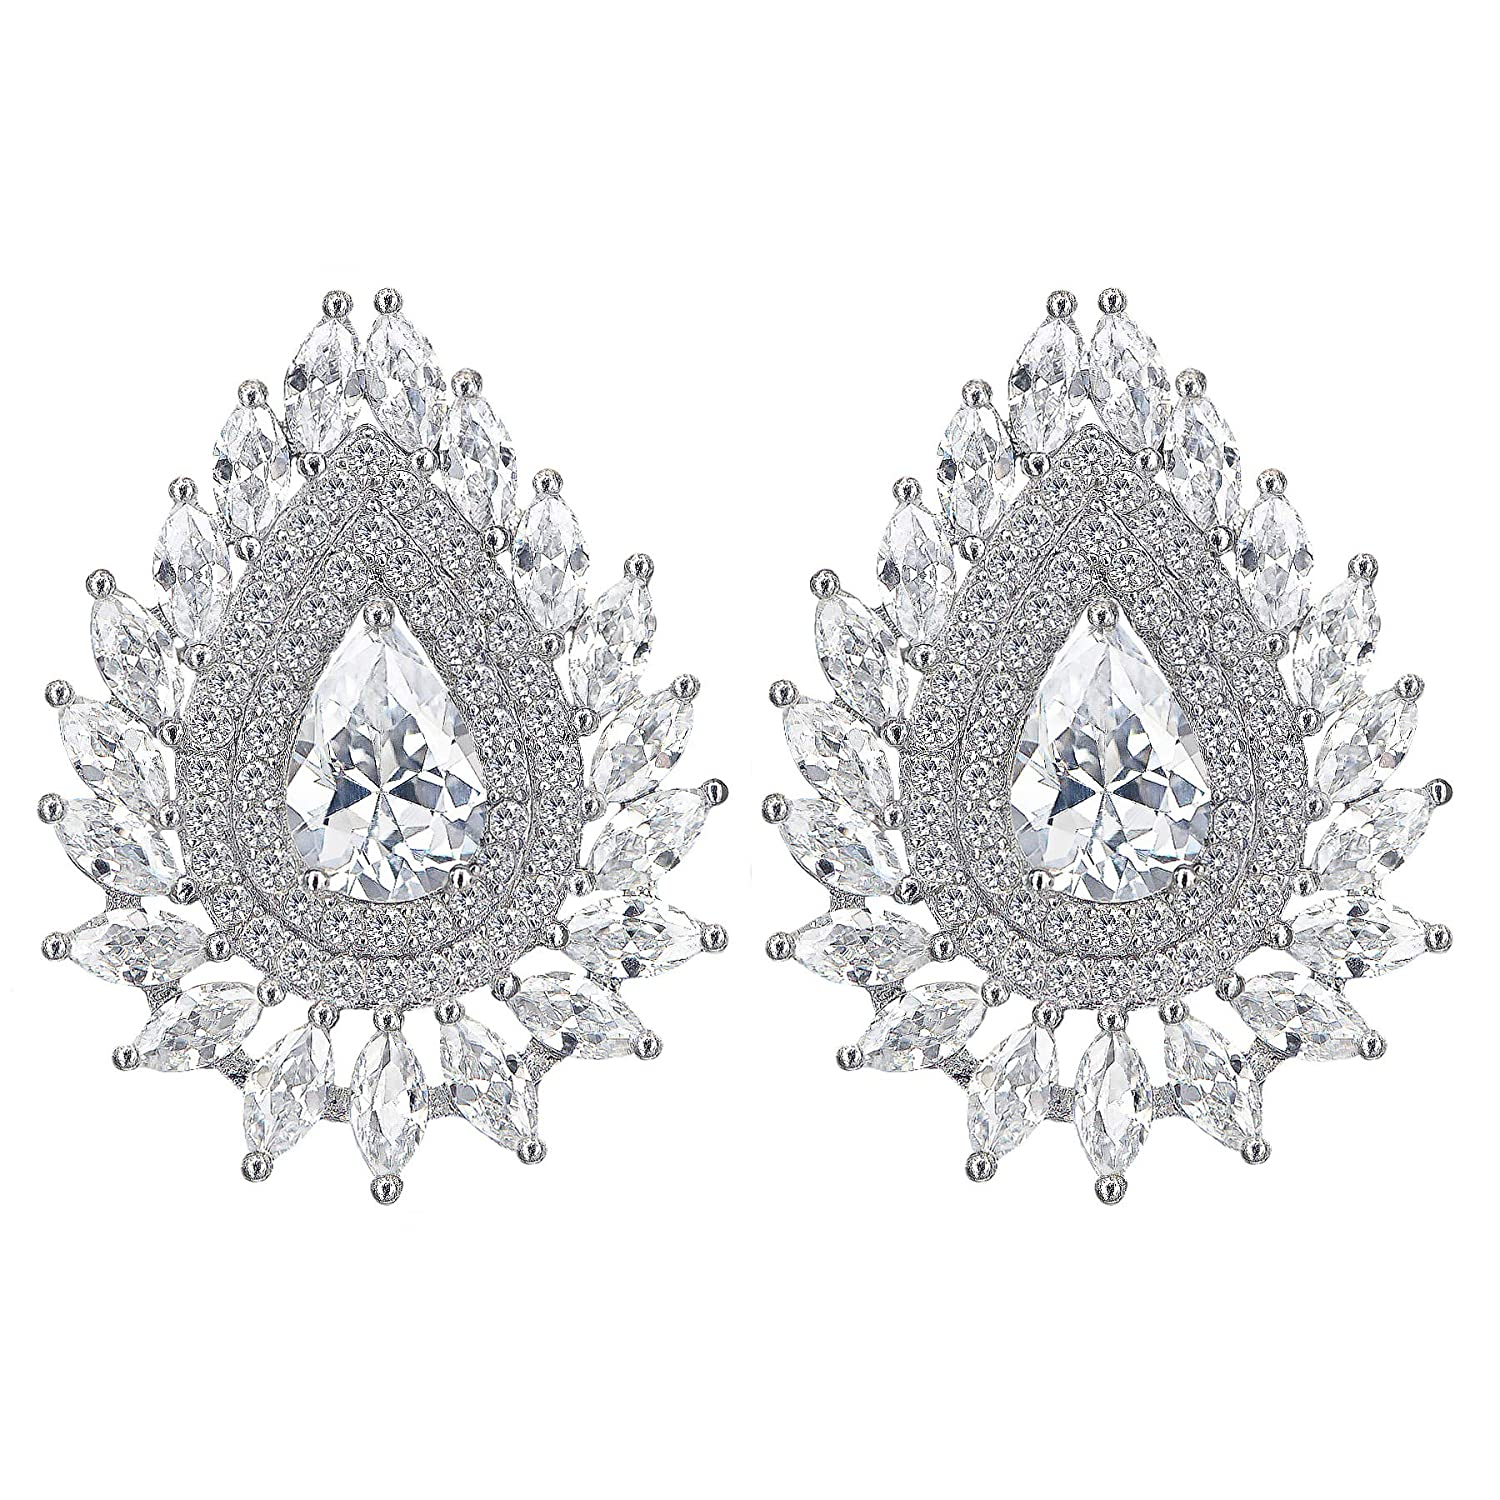 fa50d35d2 Full of high clarity AAAAA cubic zirconia (CZ) gems, these cluster earrings  sparkle with diamond-like shine from all angles. Every single CZ stone is  the ...